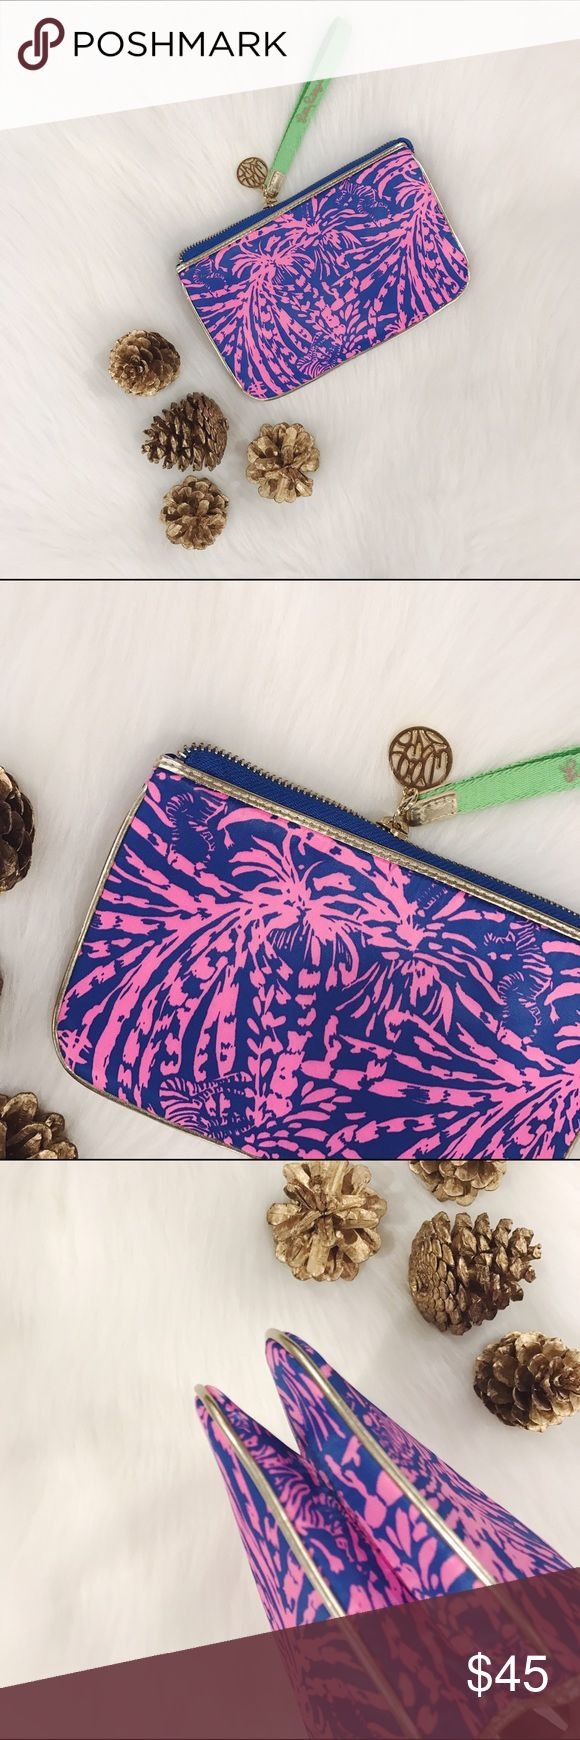 🎄SALE🎄Lilly Pulitzer Double Take Clutch Absolutely adorable, brand new without tags, never wore it, has an inside zipper pocket, slots for cards and double compartment.                     ✅MAKE ME AN OFFER✅         🎄10% off bundle of 2 items or more!🎄                             •NO TRADING                             •smoke free                             •fast shipper Lilly Pulitzer Bags